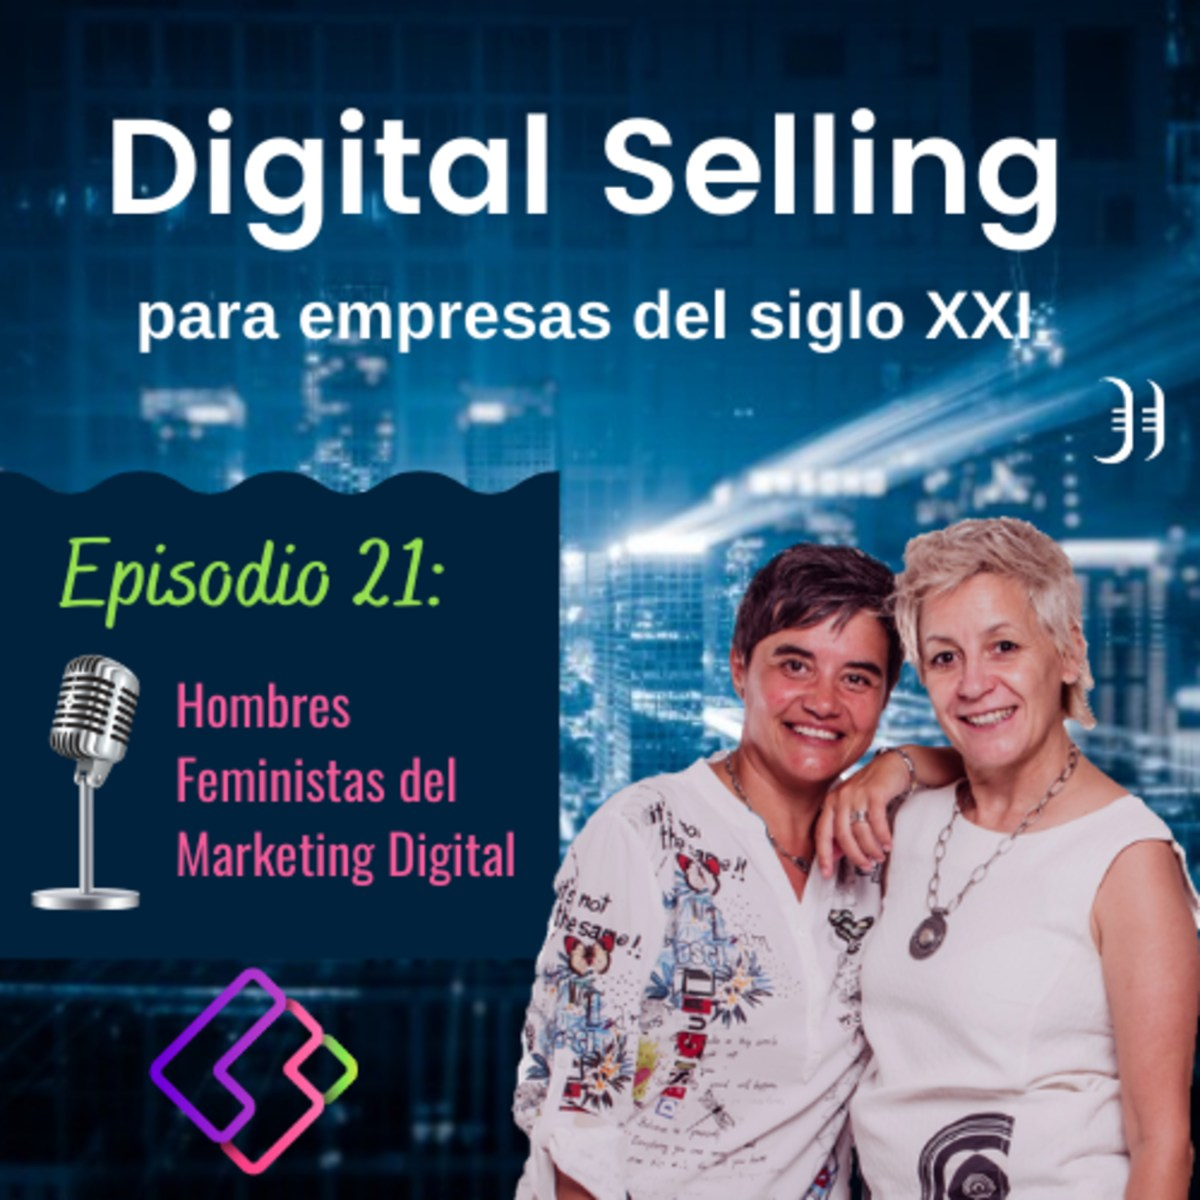 21: Hombres feministas del Marketing Digital